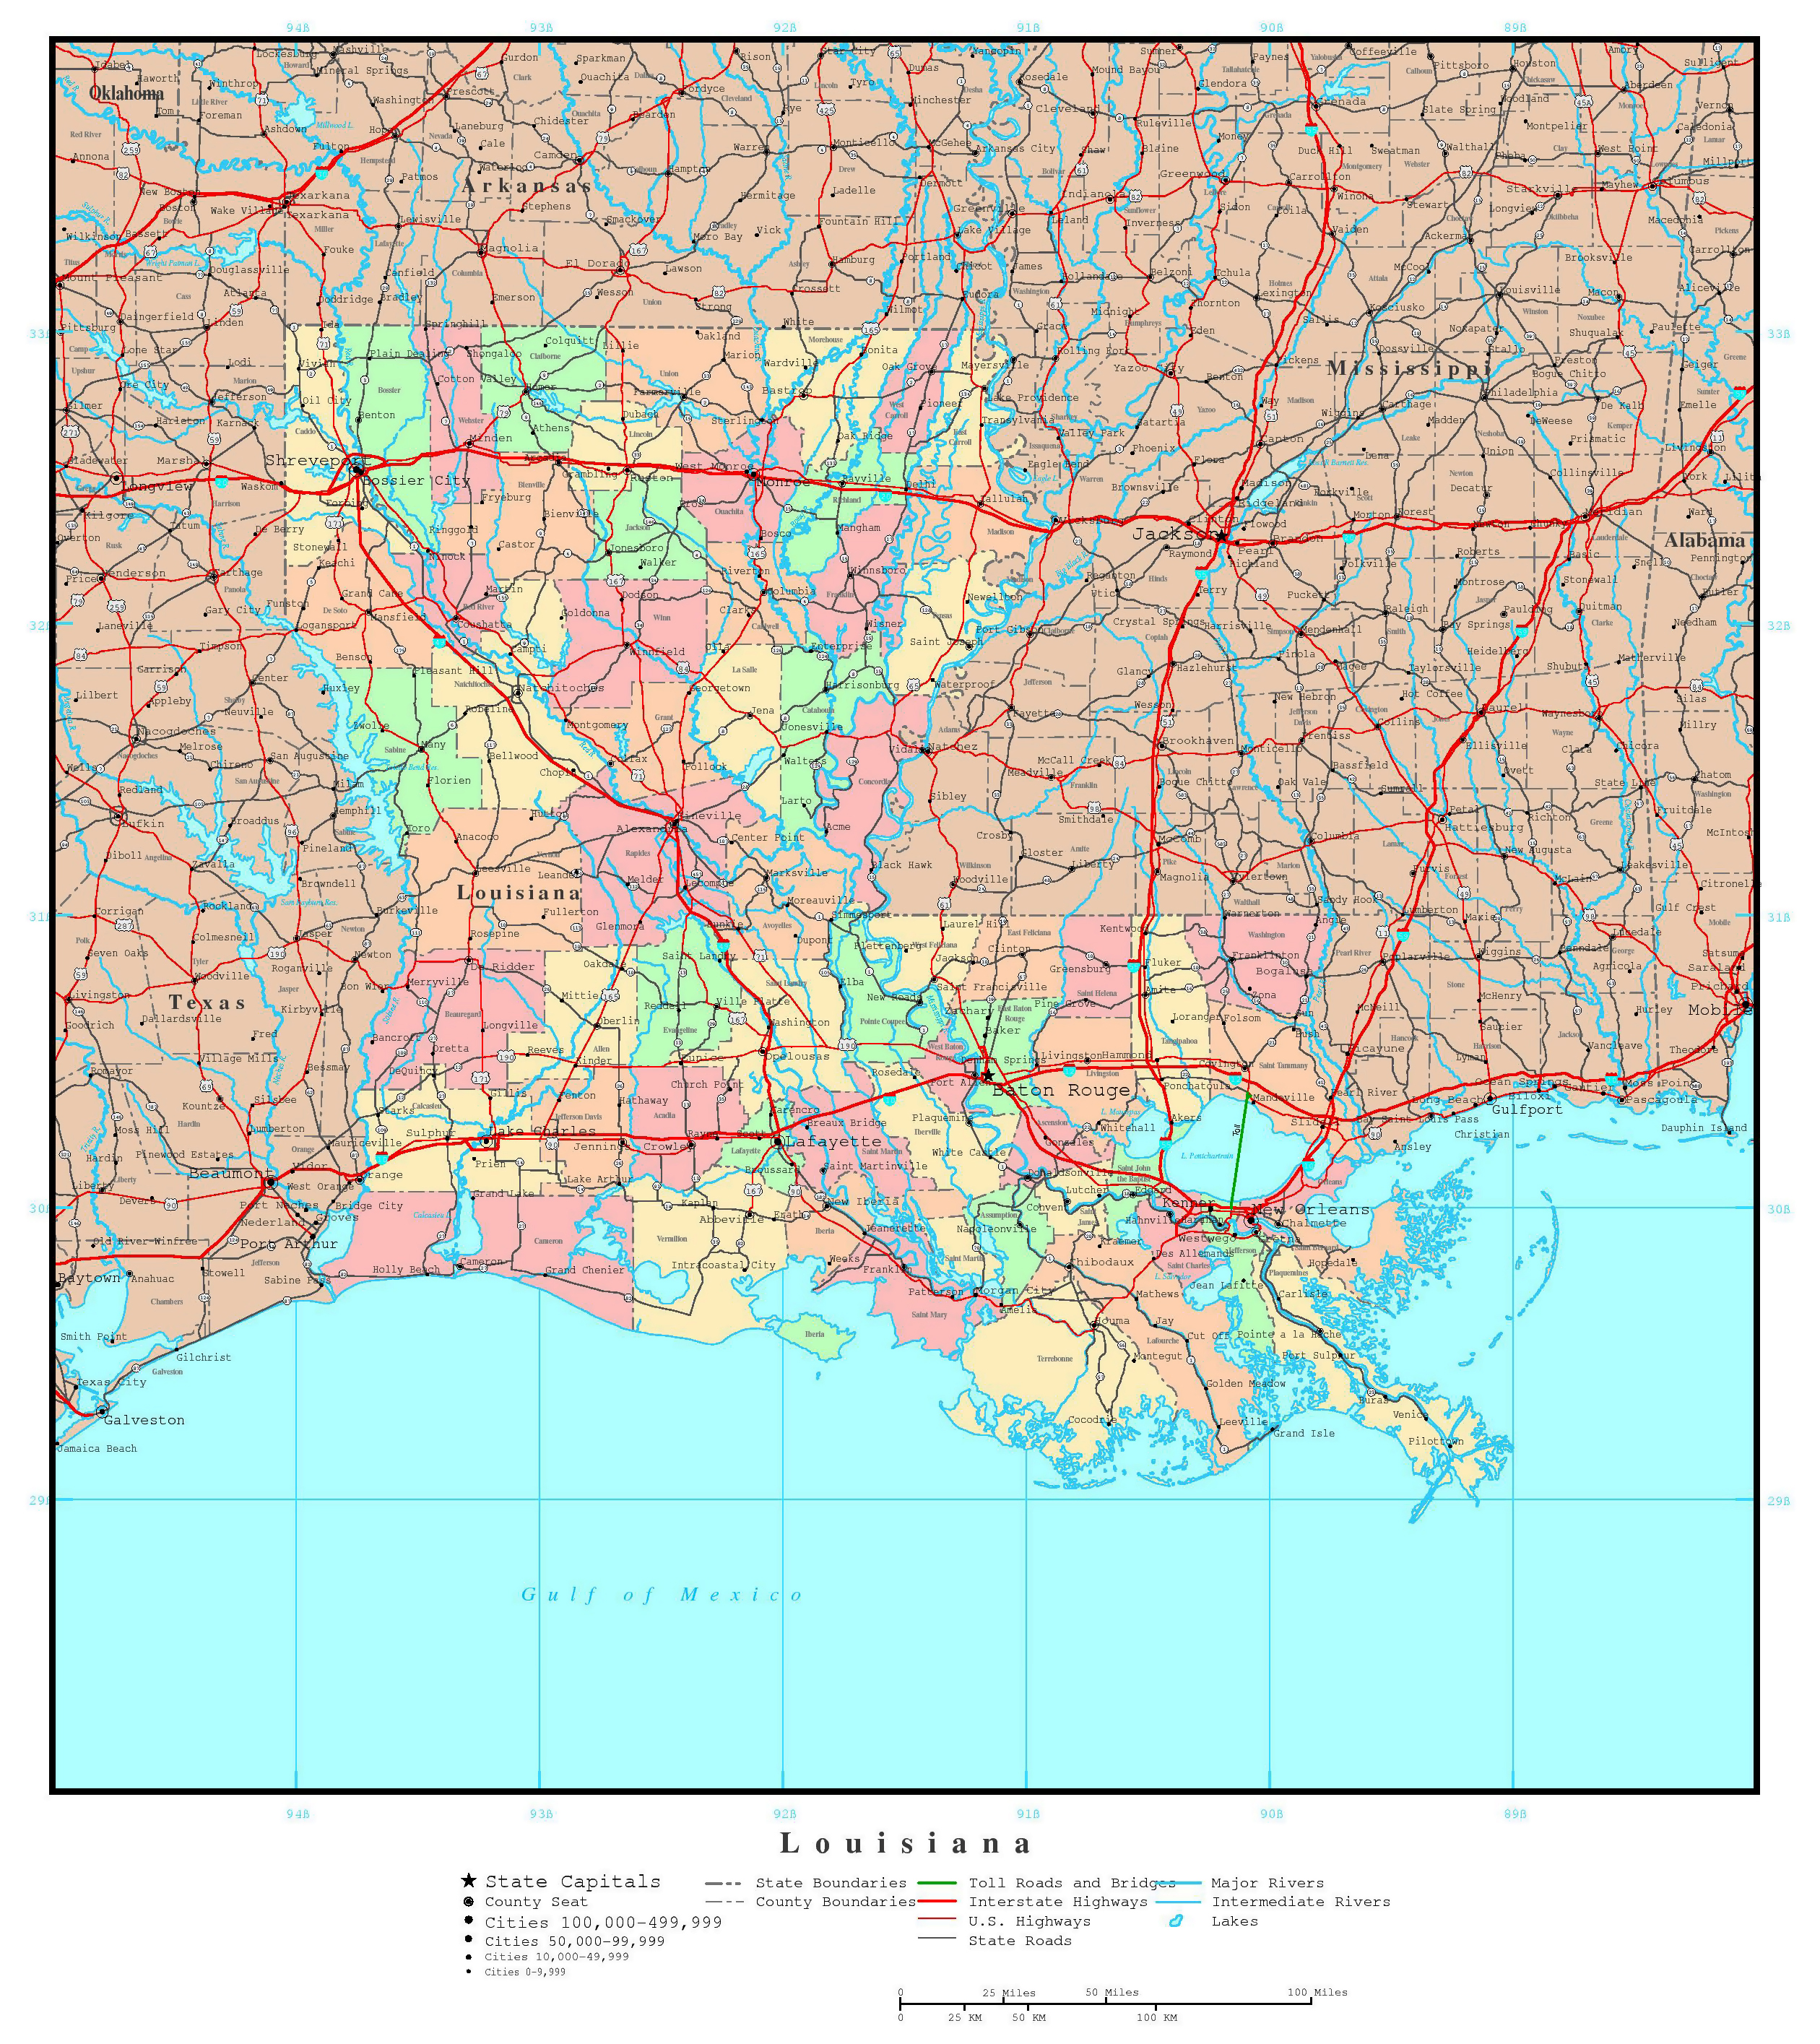 USA Map Road Map USA Detailed Road Map Of USA Large Clear Highway - Map usa states highways